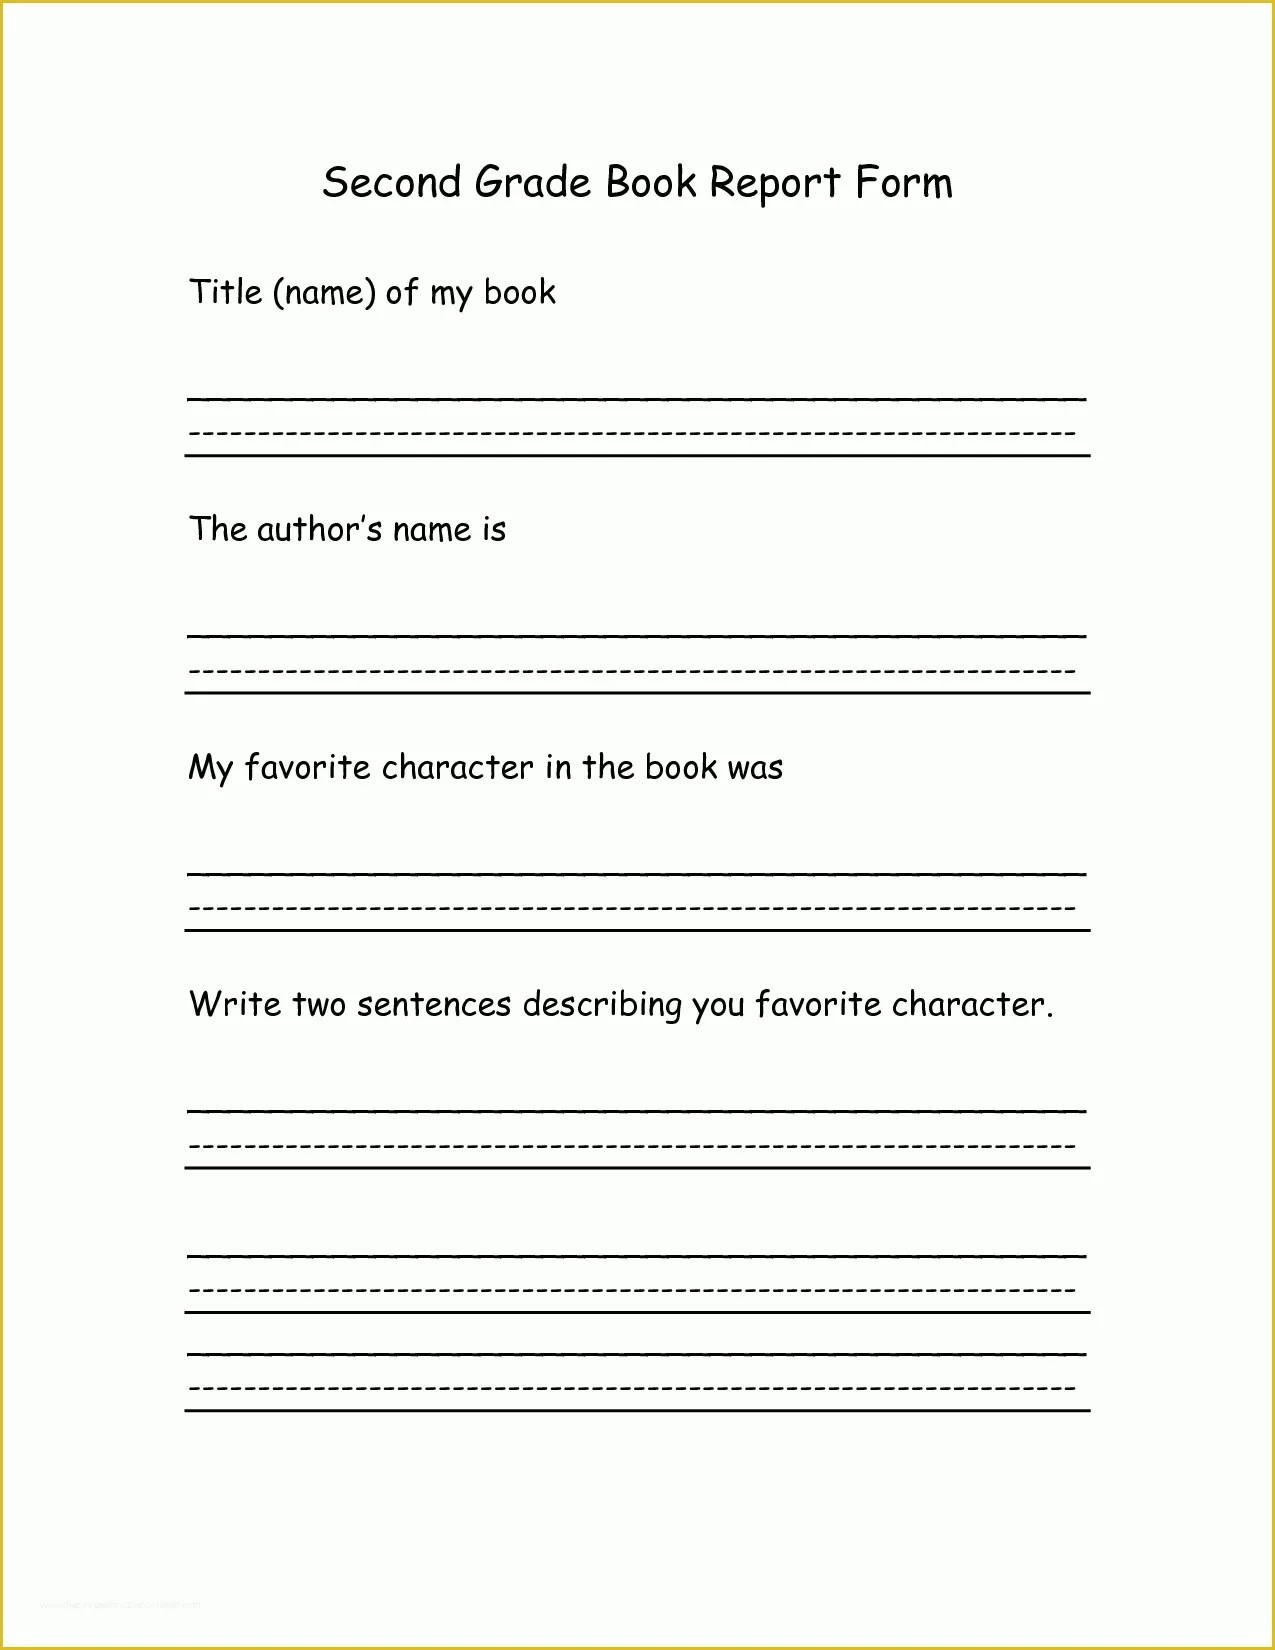 2nd Grade Book Report Template Free Of 8 Best Of 2nd Grade